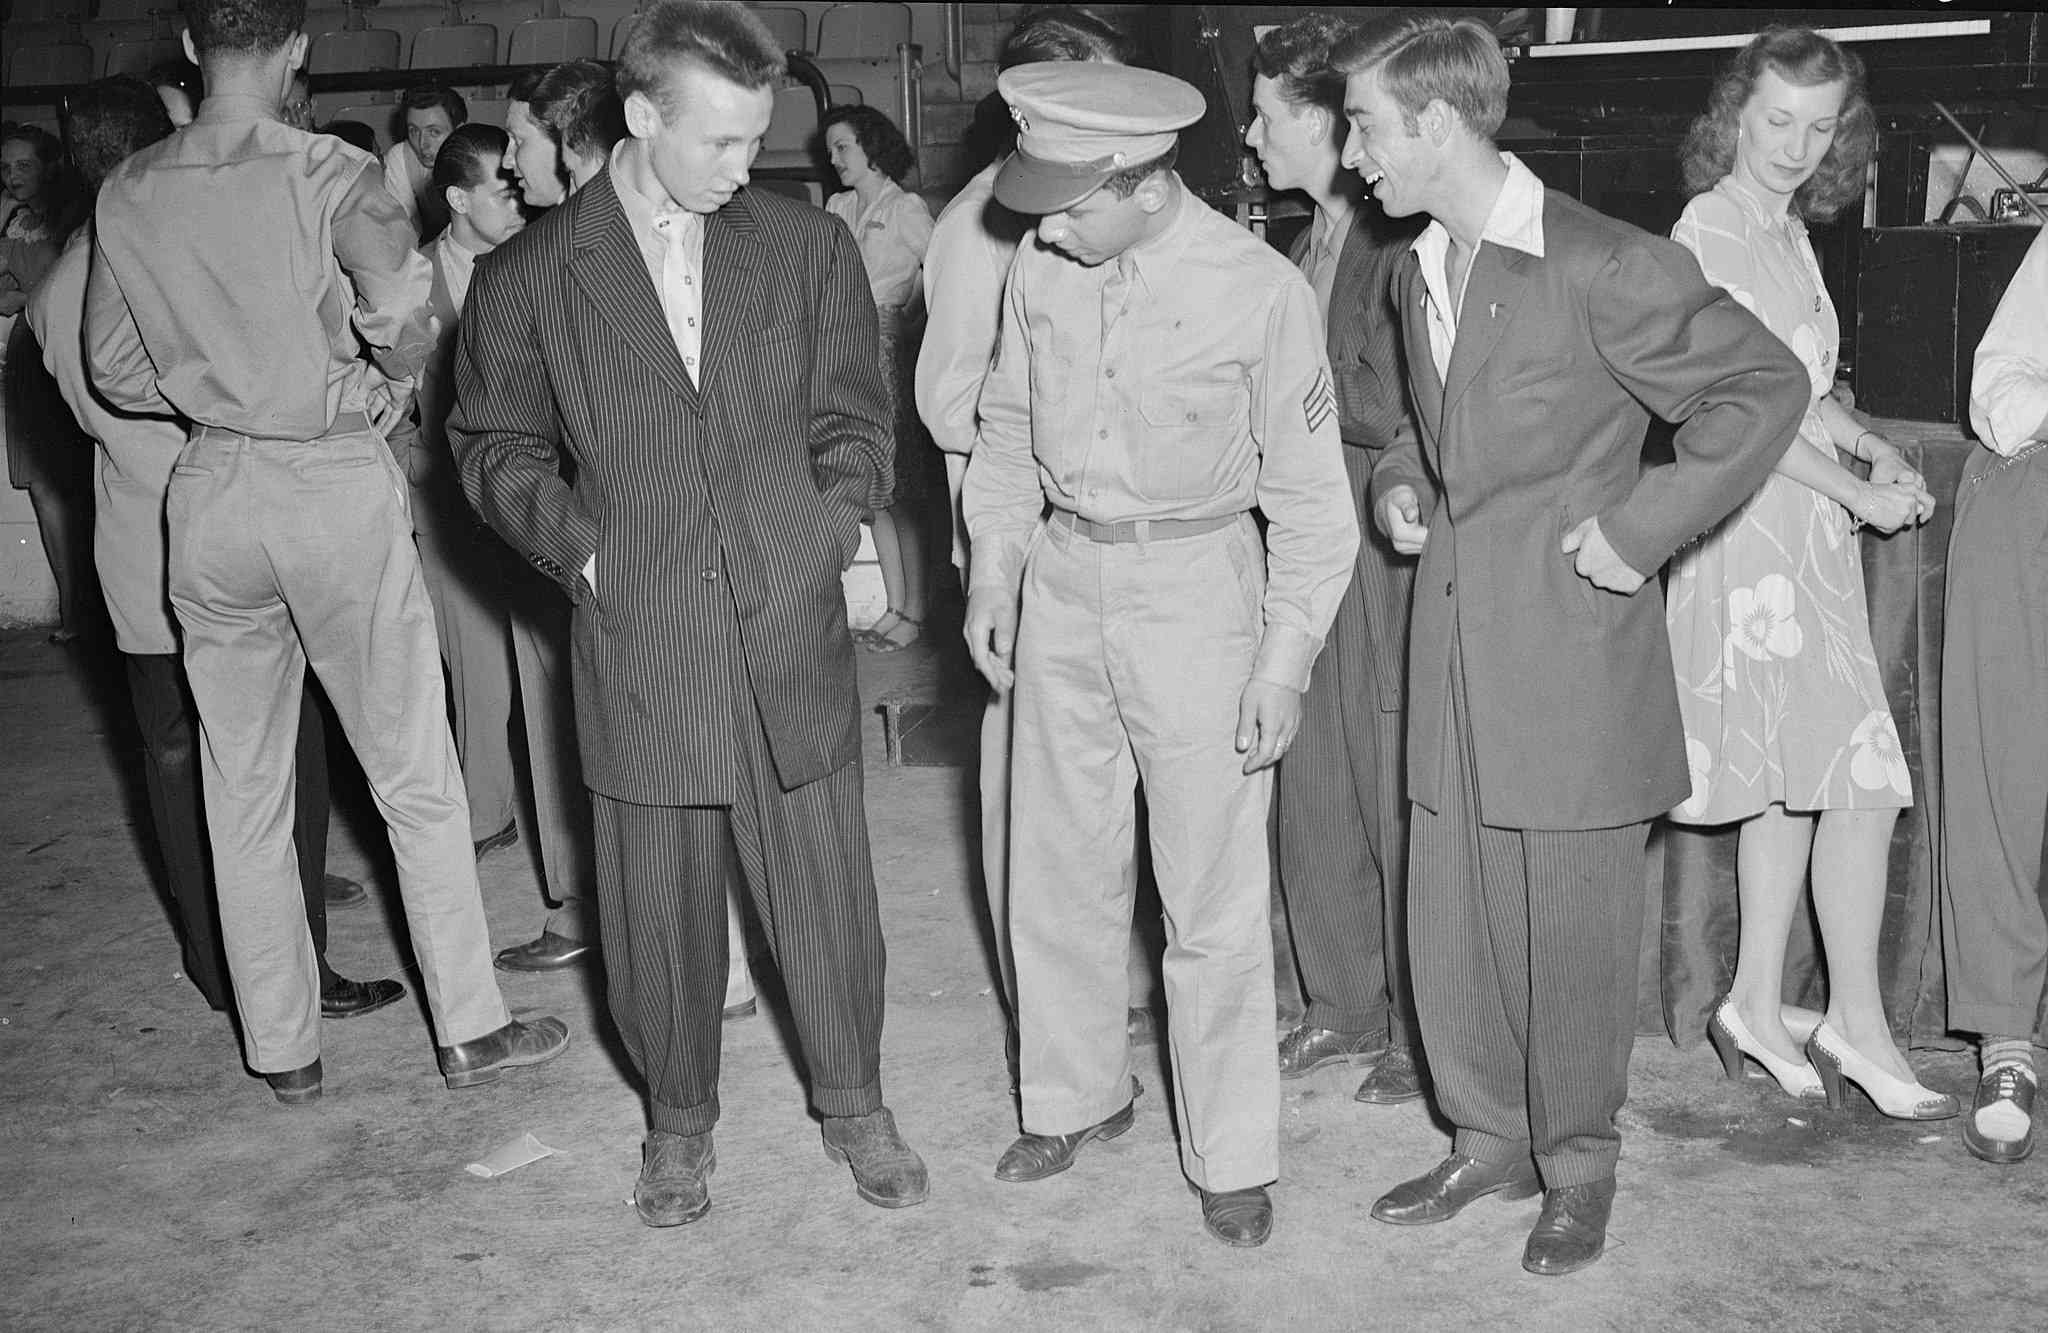 The Zoot Suit Riots: Causes, Significance, and Legacy